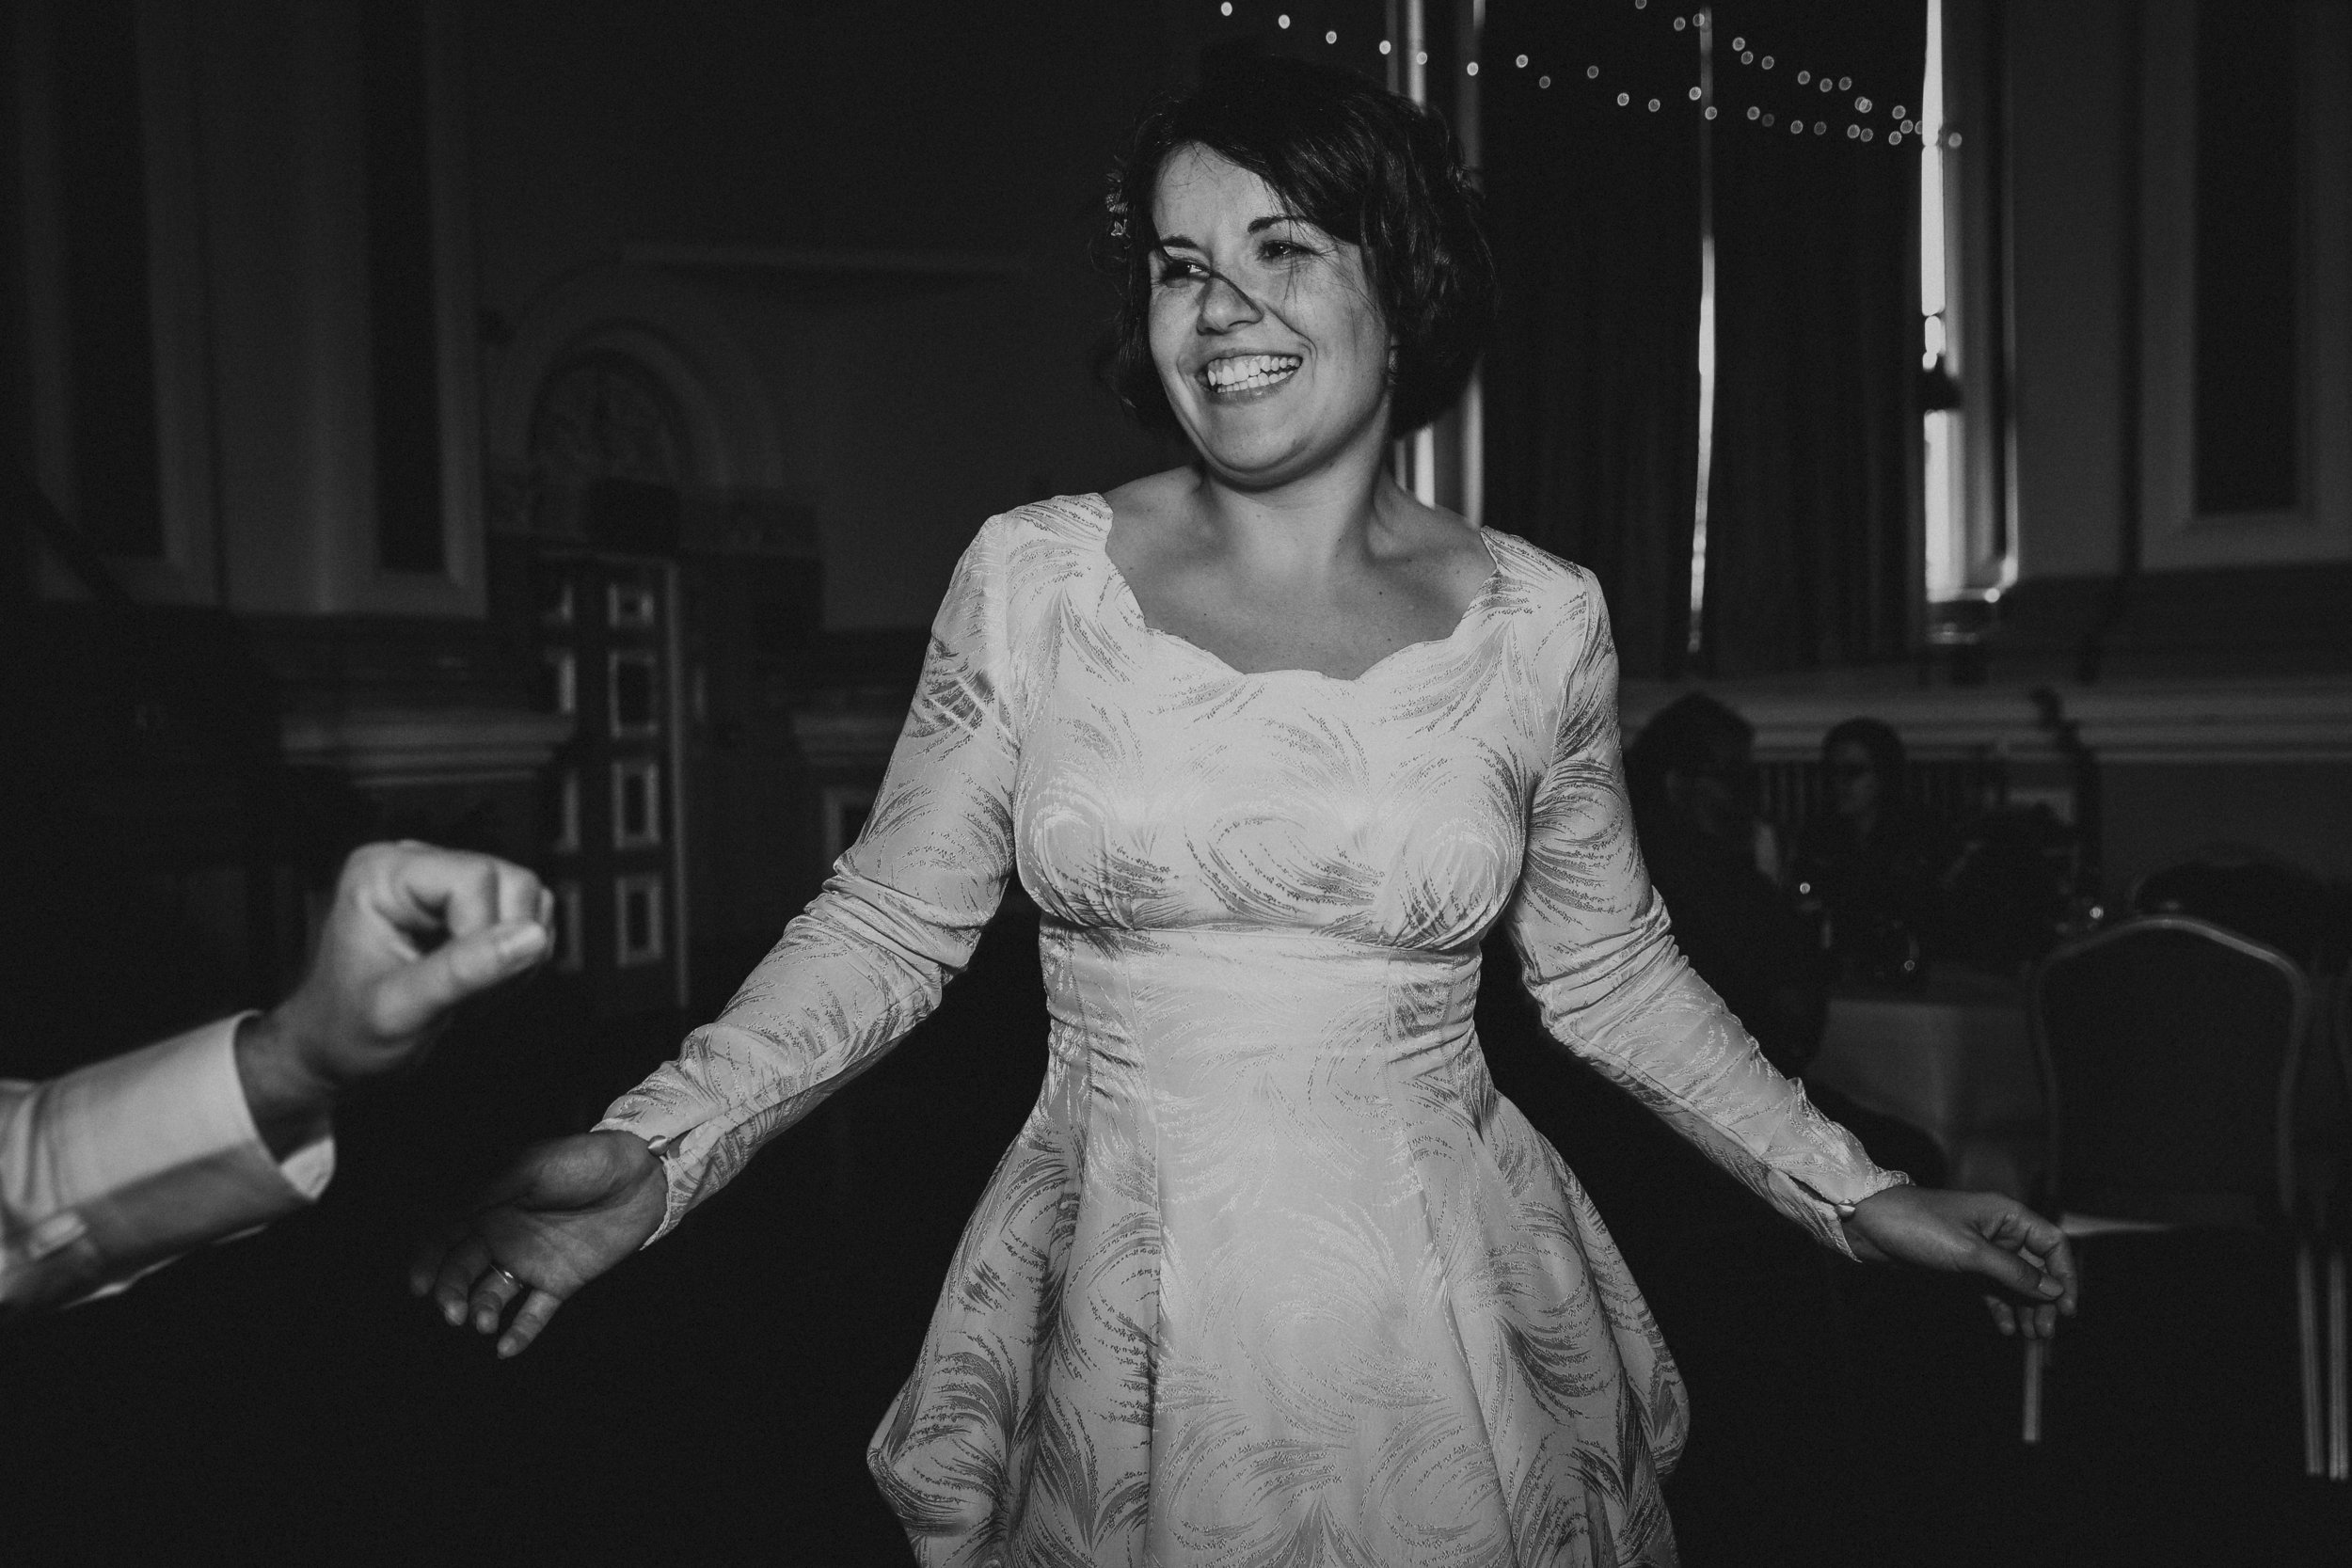 VICTORIA_HALL_SALTAIRE_VINTAGE_YORKSHIRE_WEDDING_PJ_PHILLIPS_PHOTOGRAPHY_130.jpg